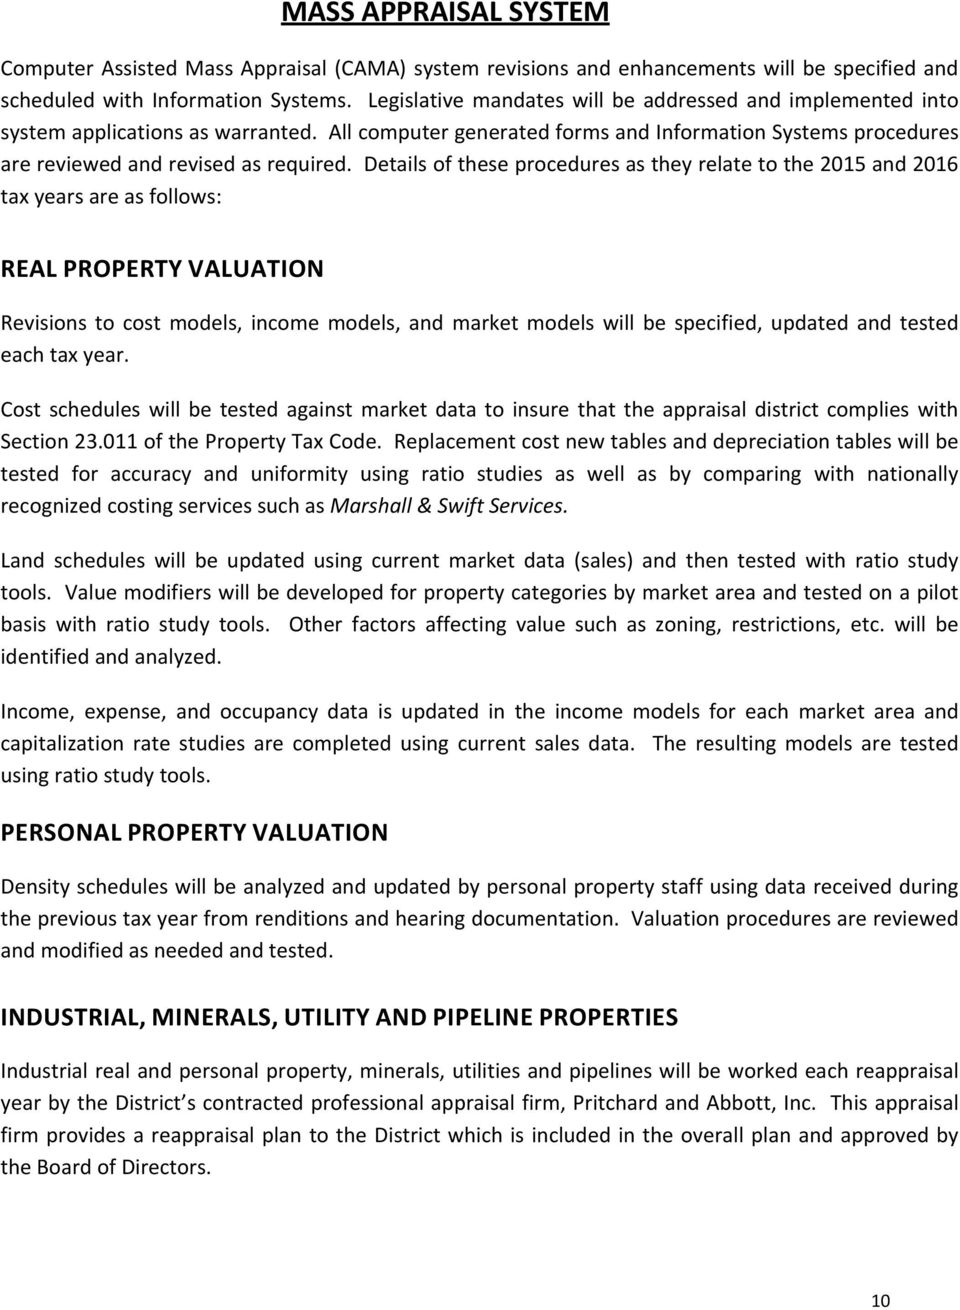 Details of these procedures as they relate to the 2015 and 2016 tax years are as follows: REAL PROPERTY VALUATION Revisions to cost models, income models, and market models will be specified, updated